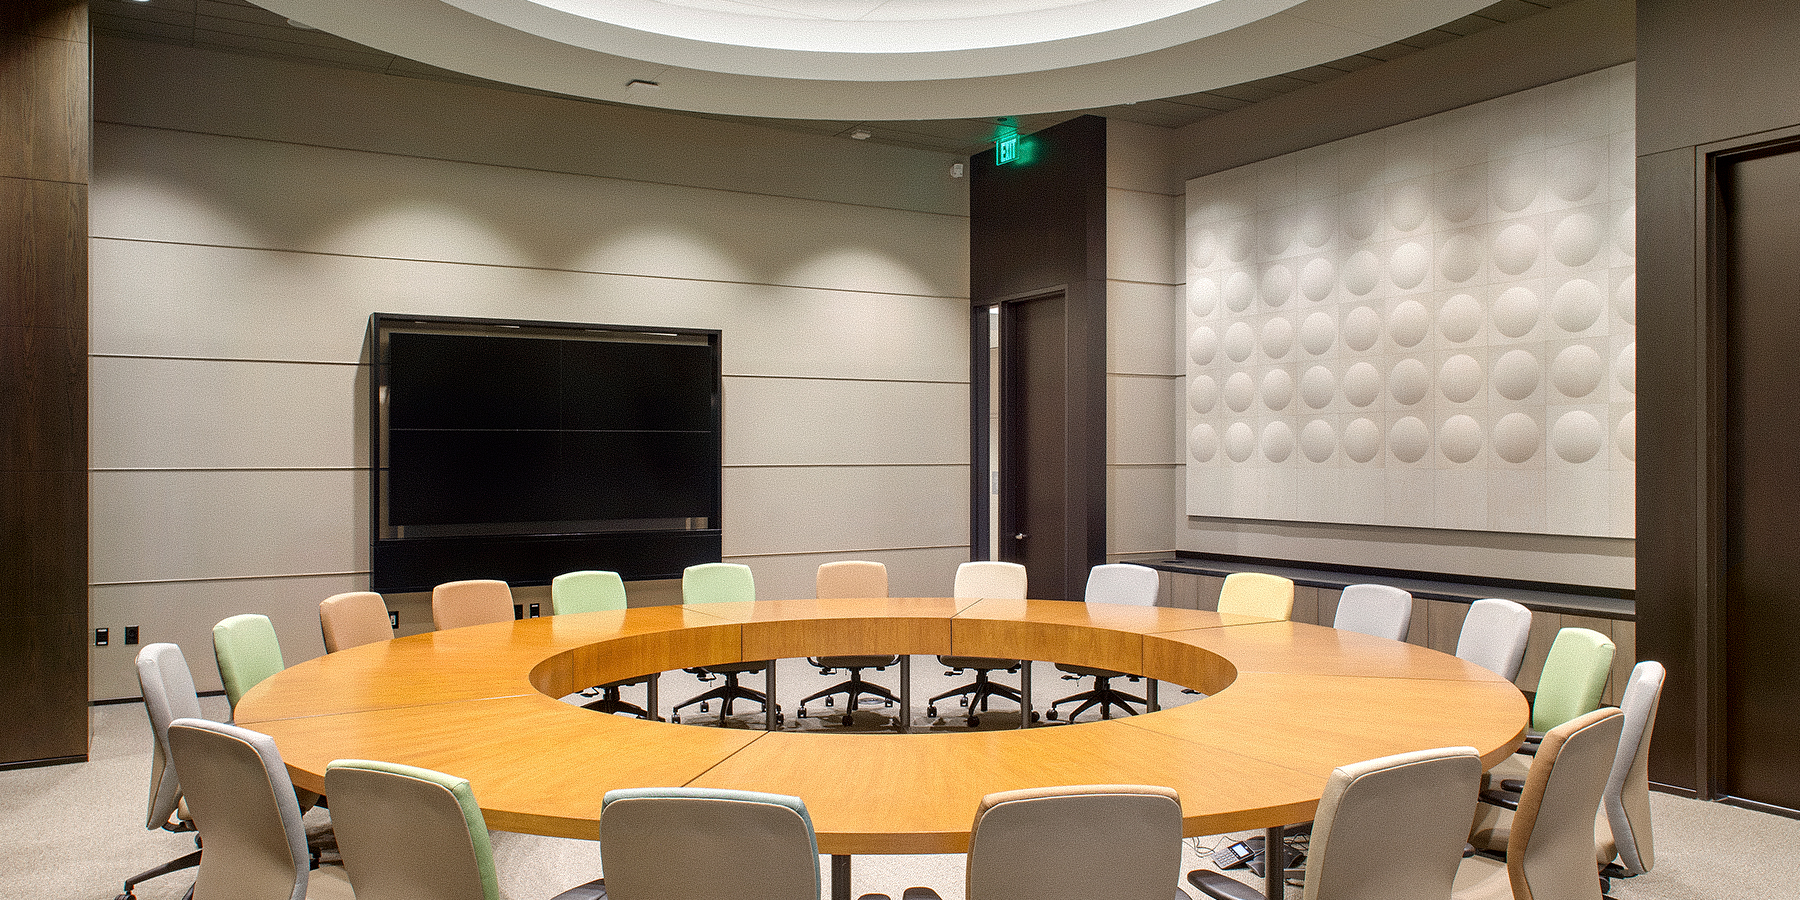 Cash America Team Conference and Learning Center   Fort Worth, Texas. Install by Infinity Sound of Grand Prairie, Texas.